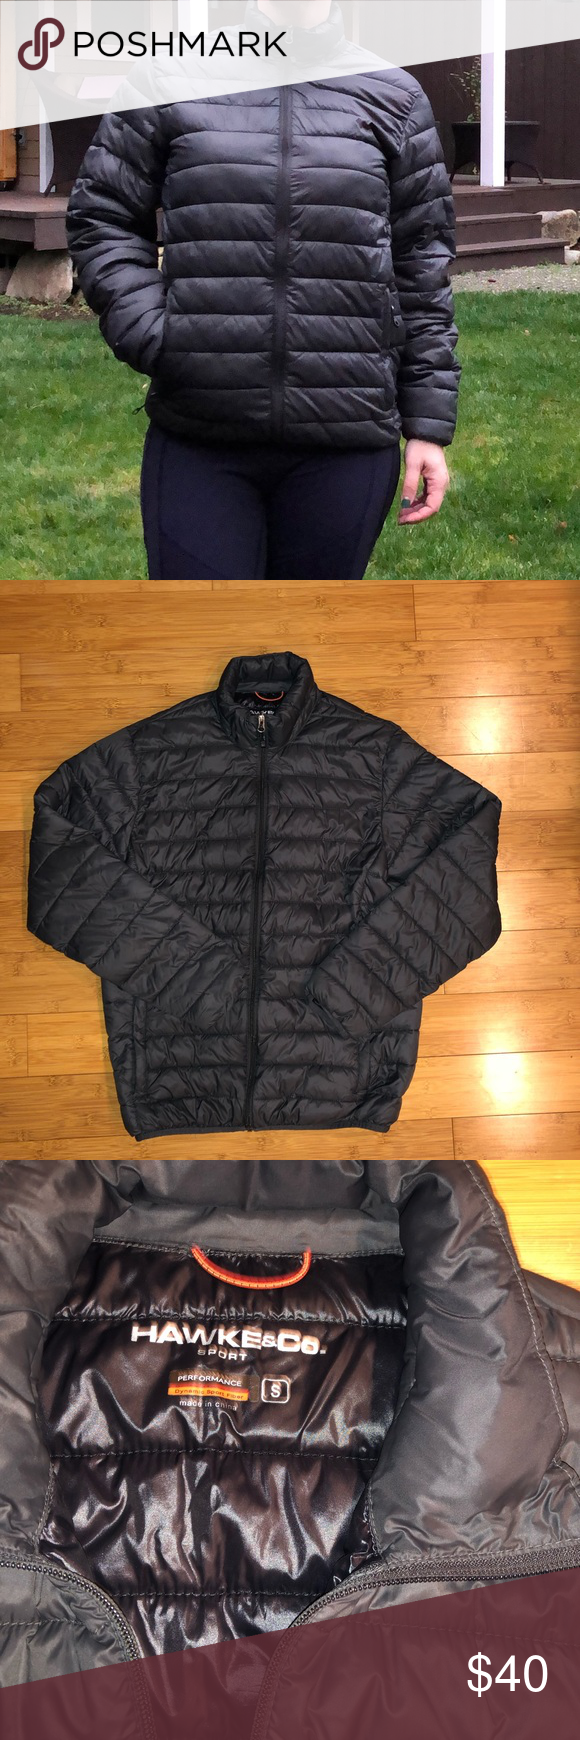 Vguc Hawke Co Puffer Jacket Sulver Gray Hawke Co Down Puffer Jacket Very Good Shape All Hardware And Zippers Fu Jackets Clothes Design Puffer Jackets [ 1740 x 580 Pixel ]